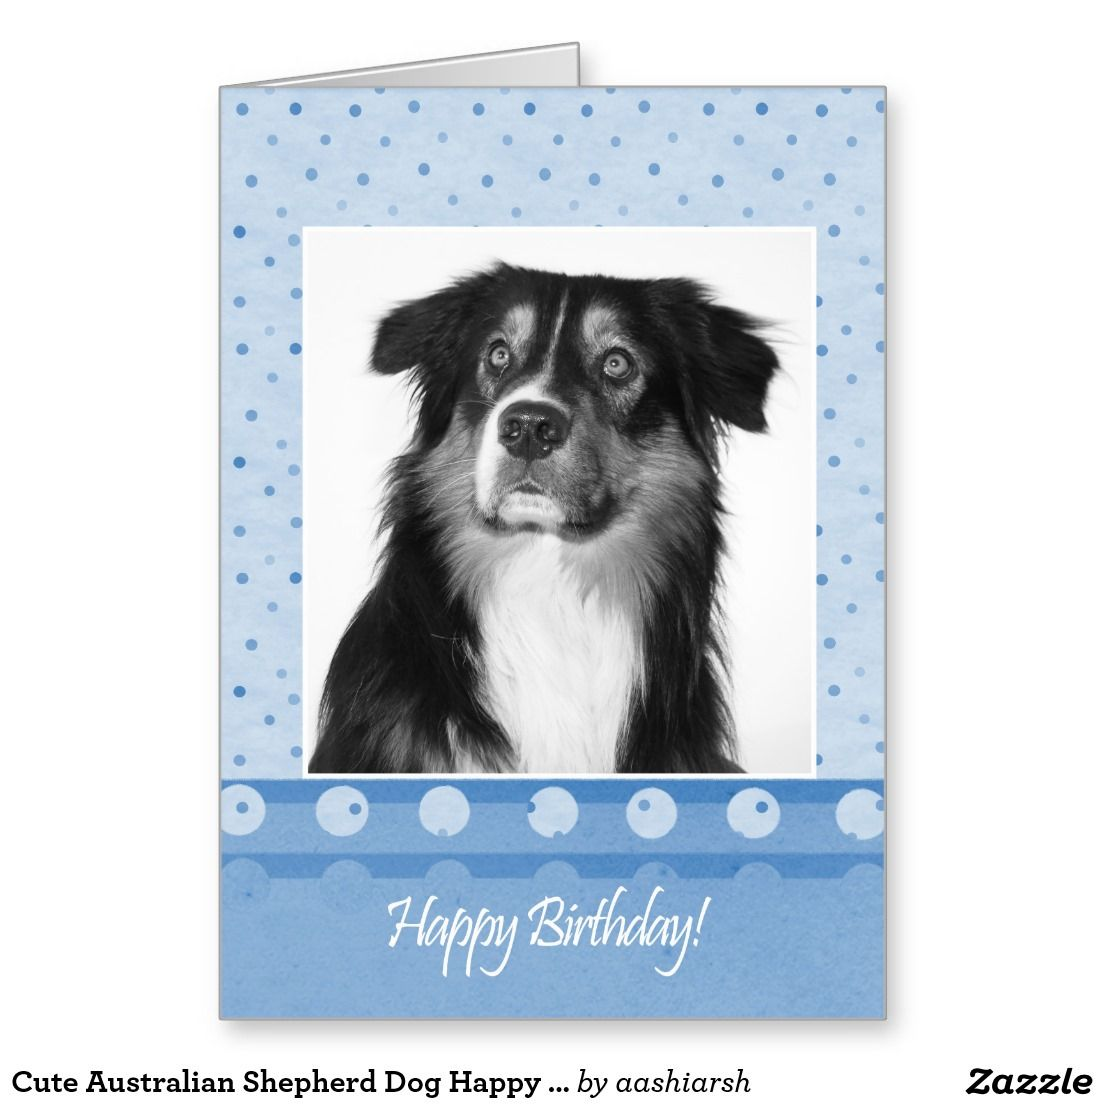 Cute Australian Shepherd Dog Happy Birthday Card Zazzle Com